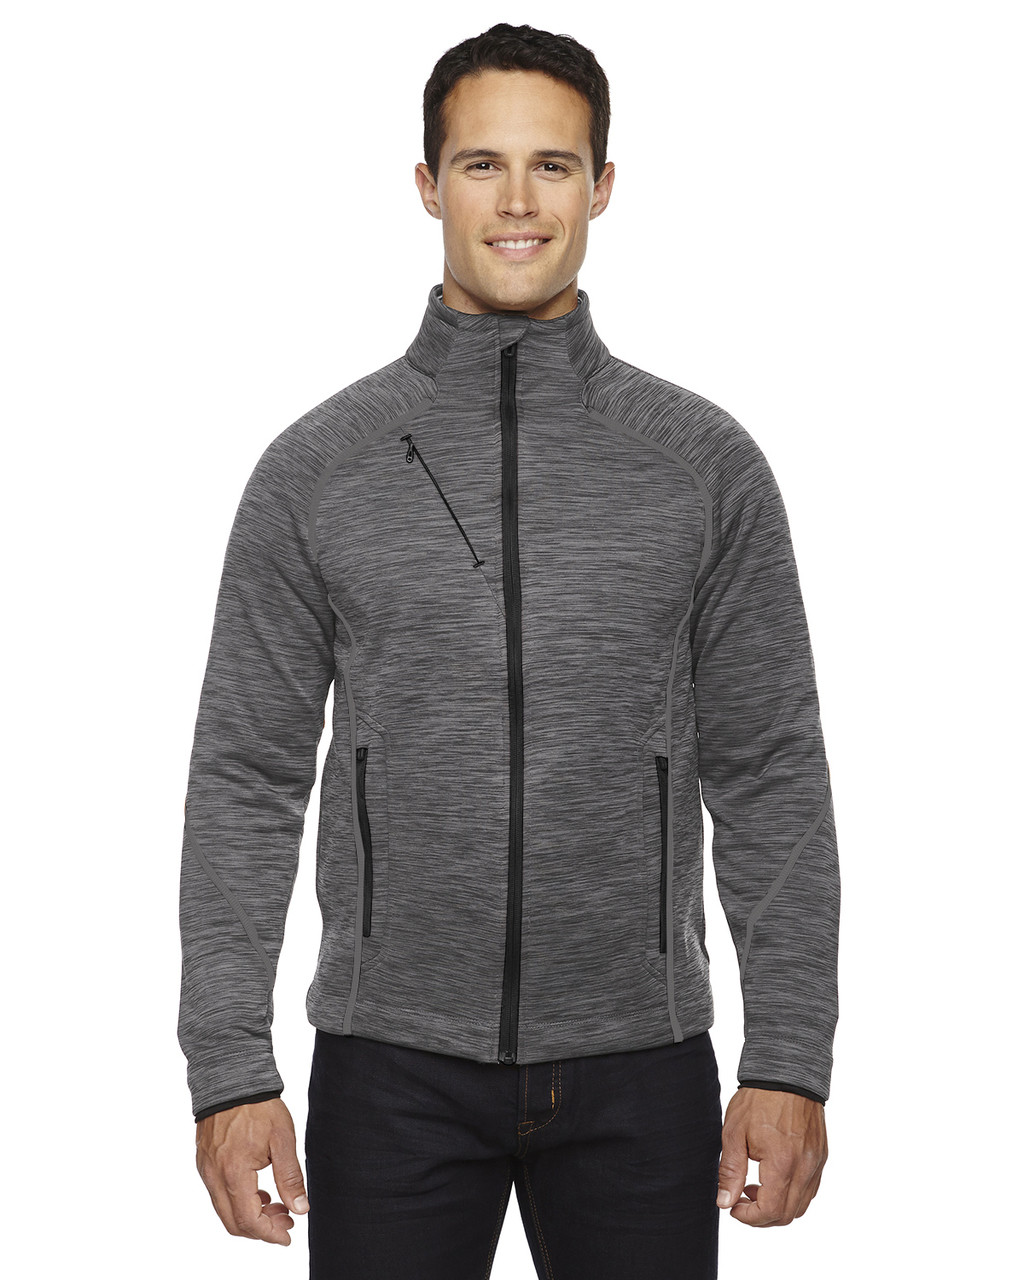 Carbon -  88697 North End Sport Flux Melange Bonded Fleece Jacket